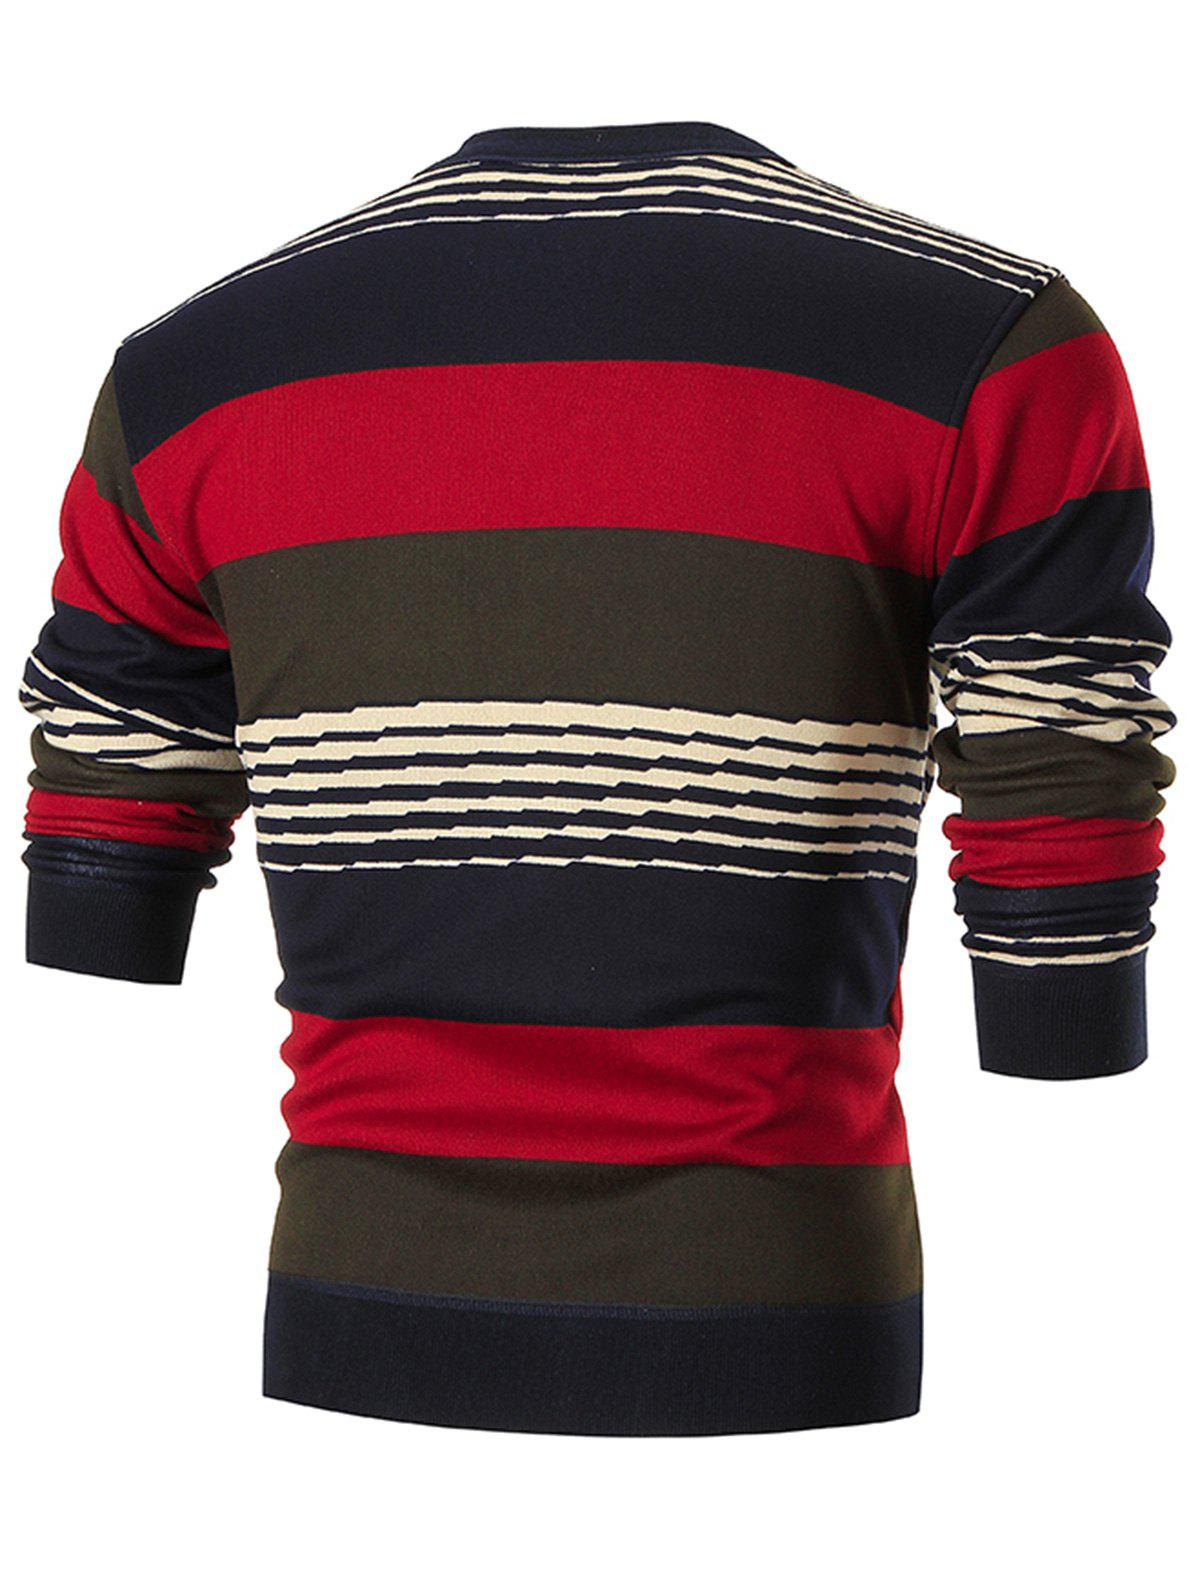 Multi-colored Wide Stripe Pullover Sweater - RED XL